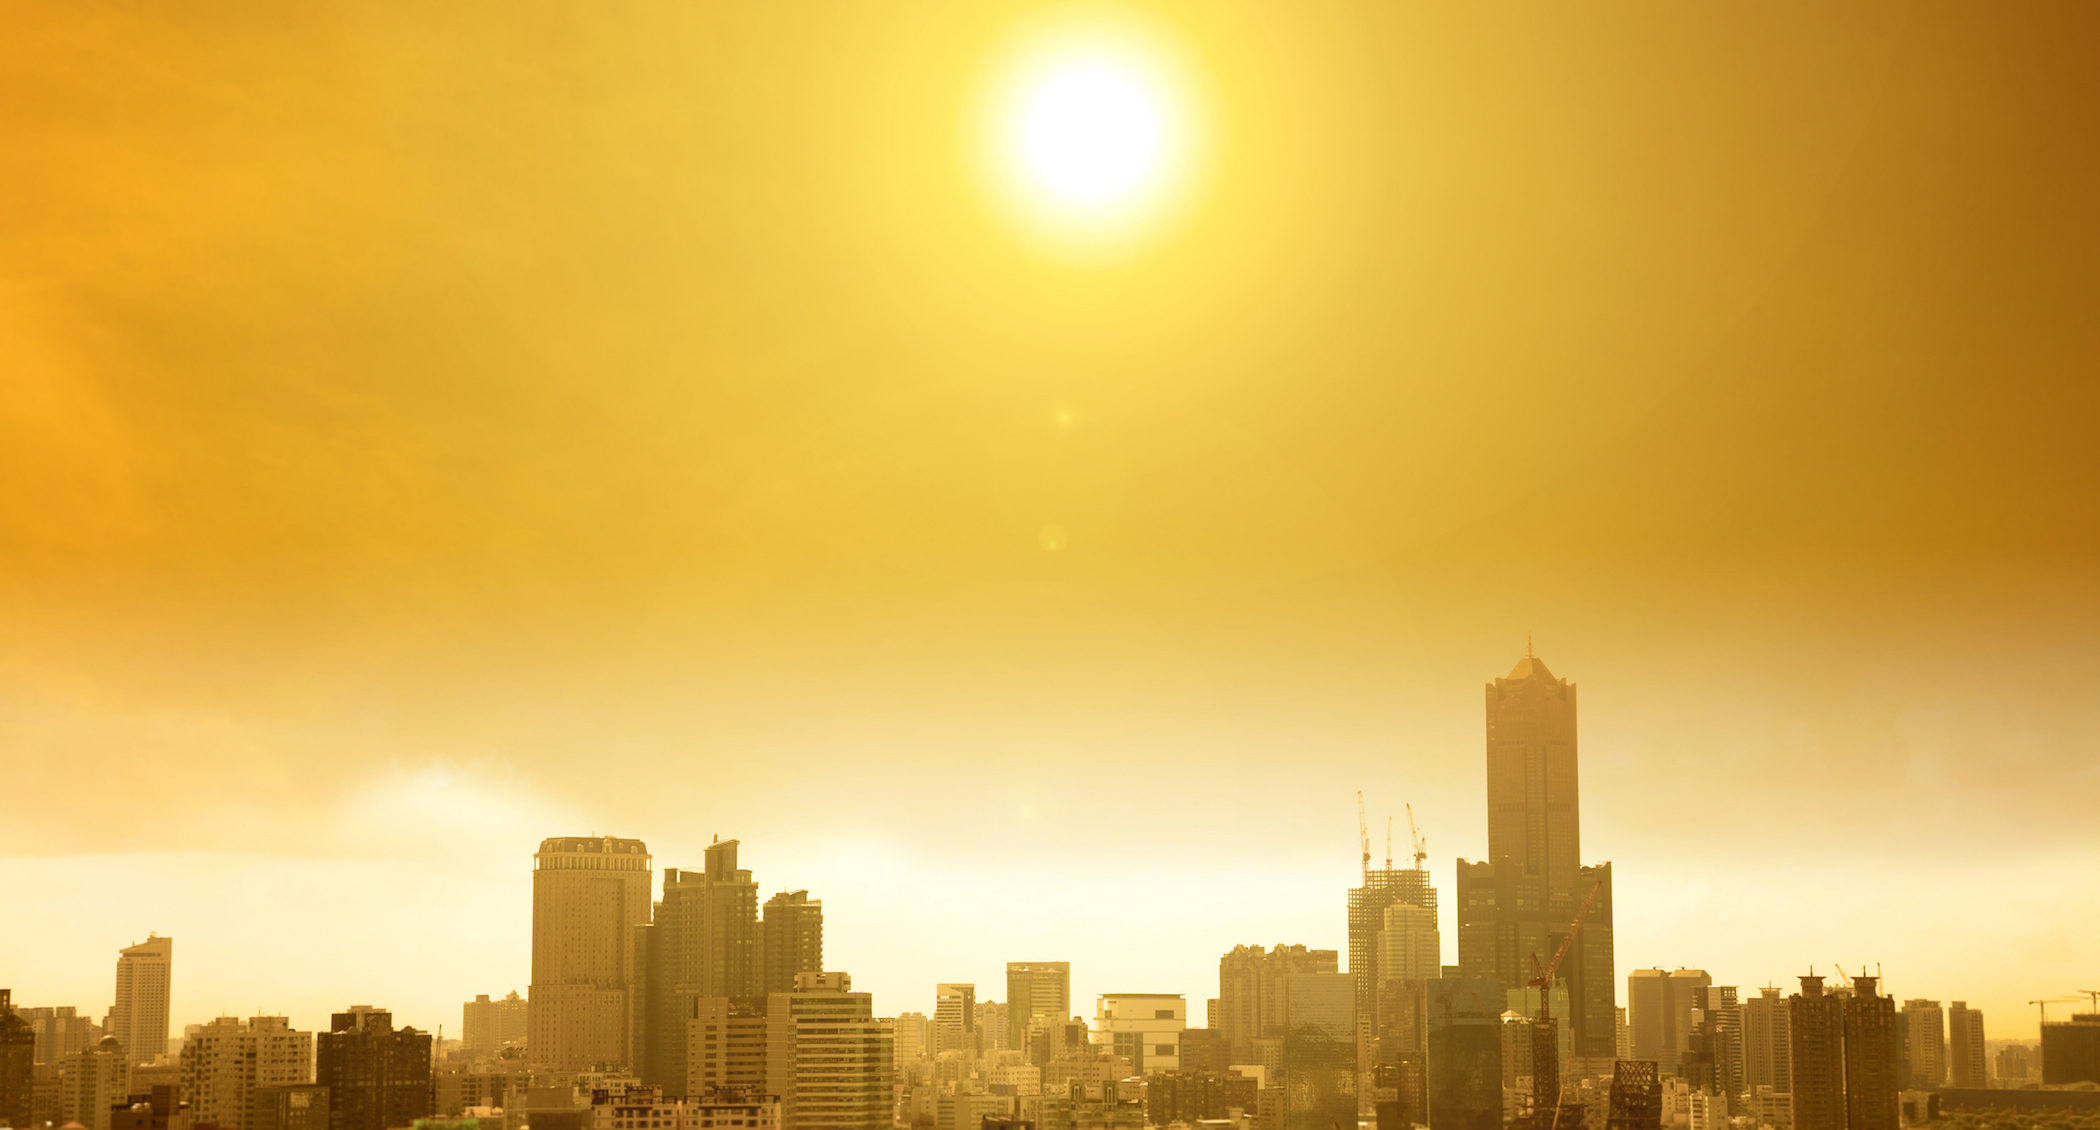 city skyline under burning sun